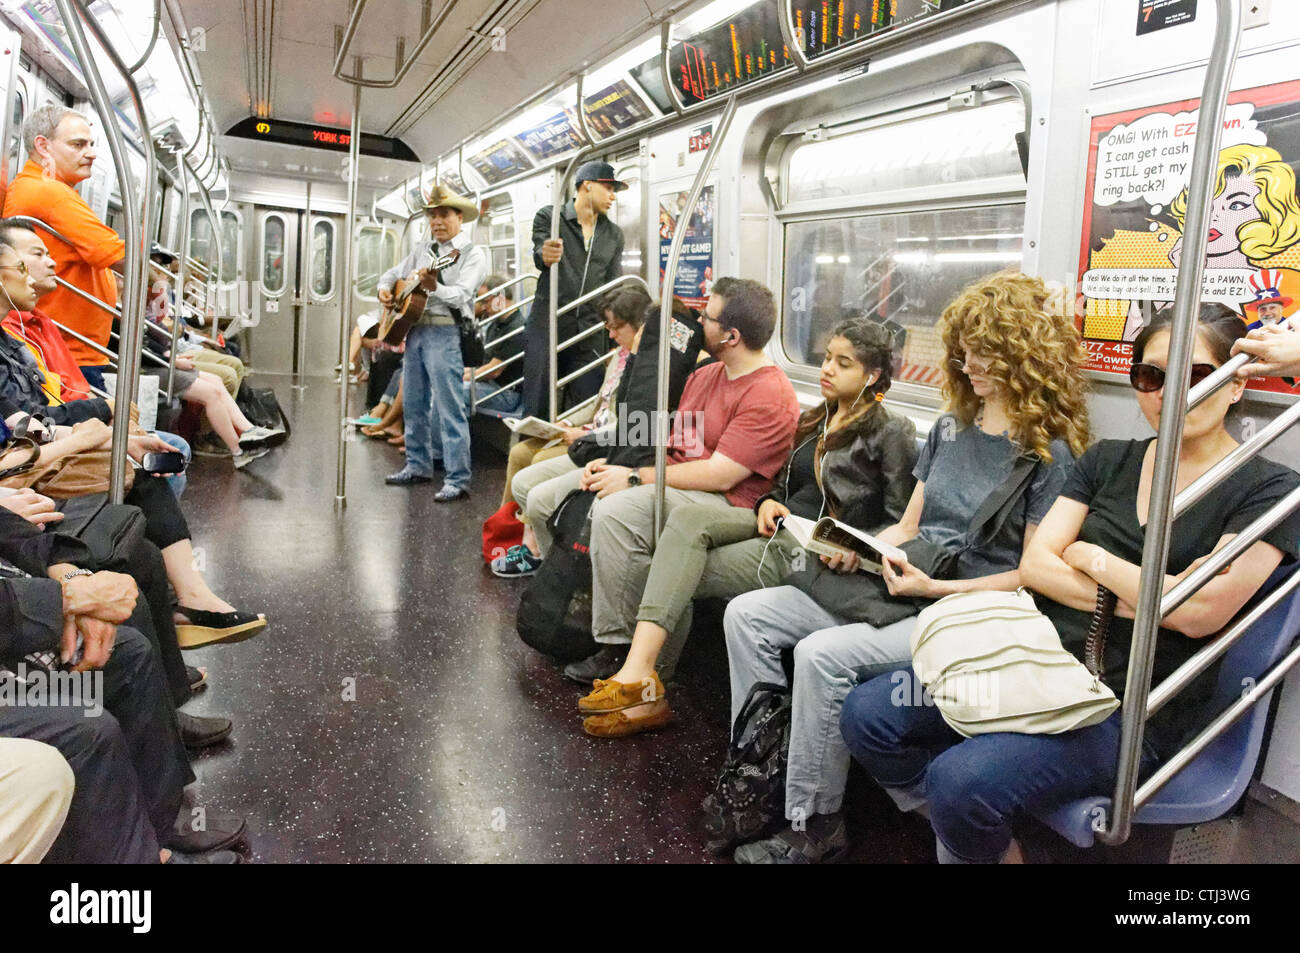 People in a Subway Train in New York Stock Photo: 49570684 ...